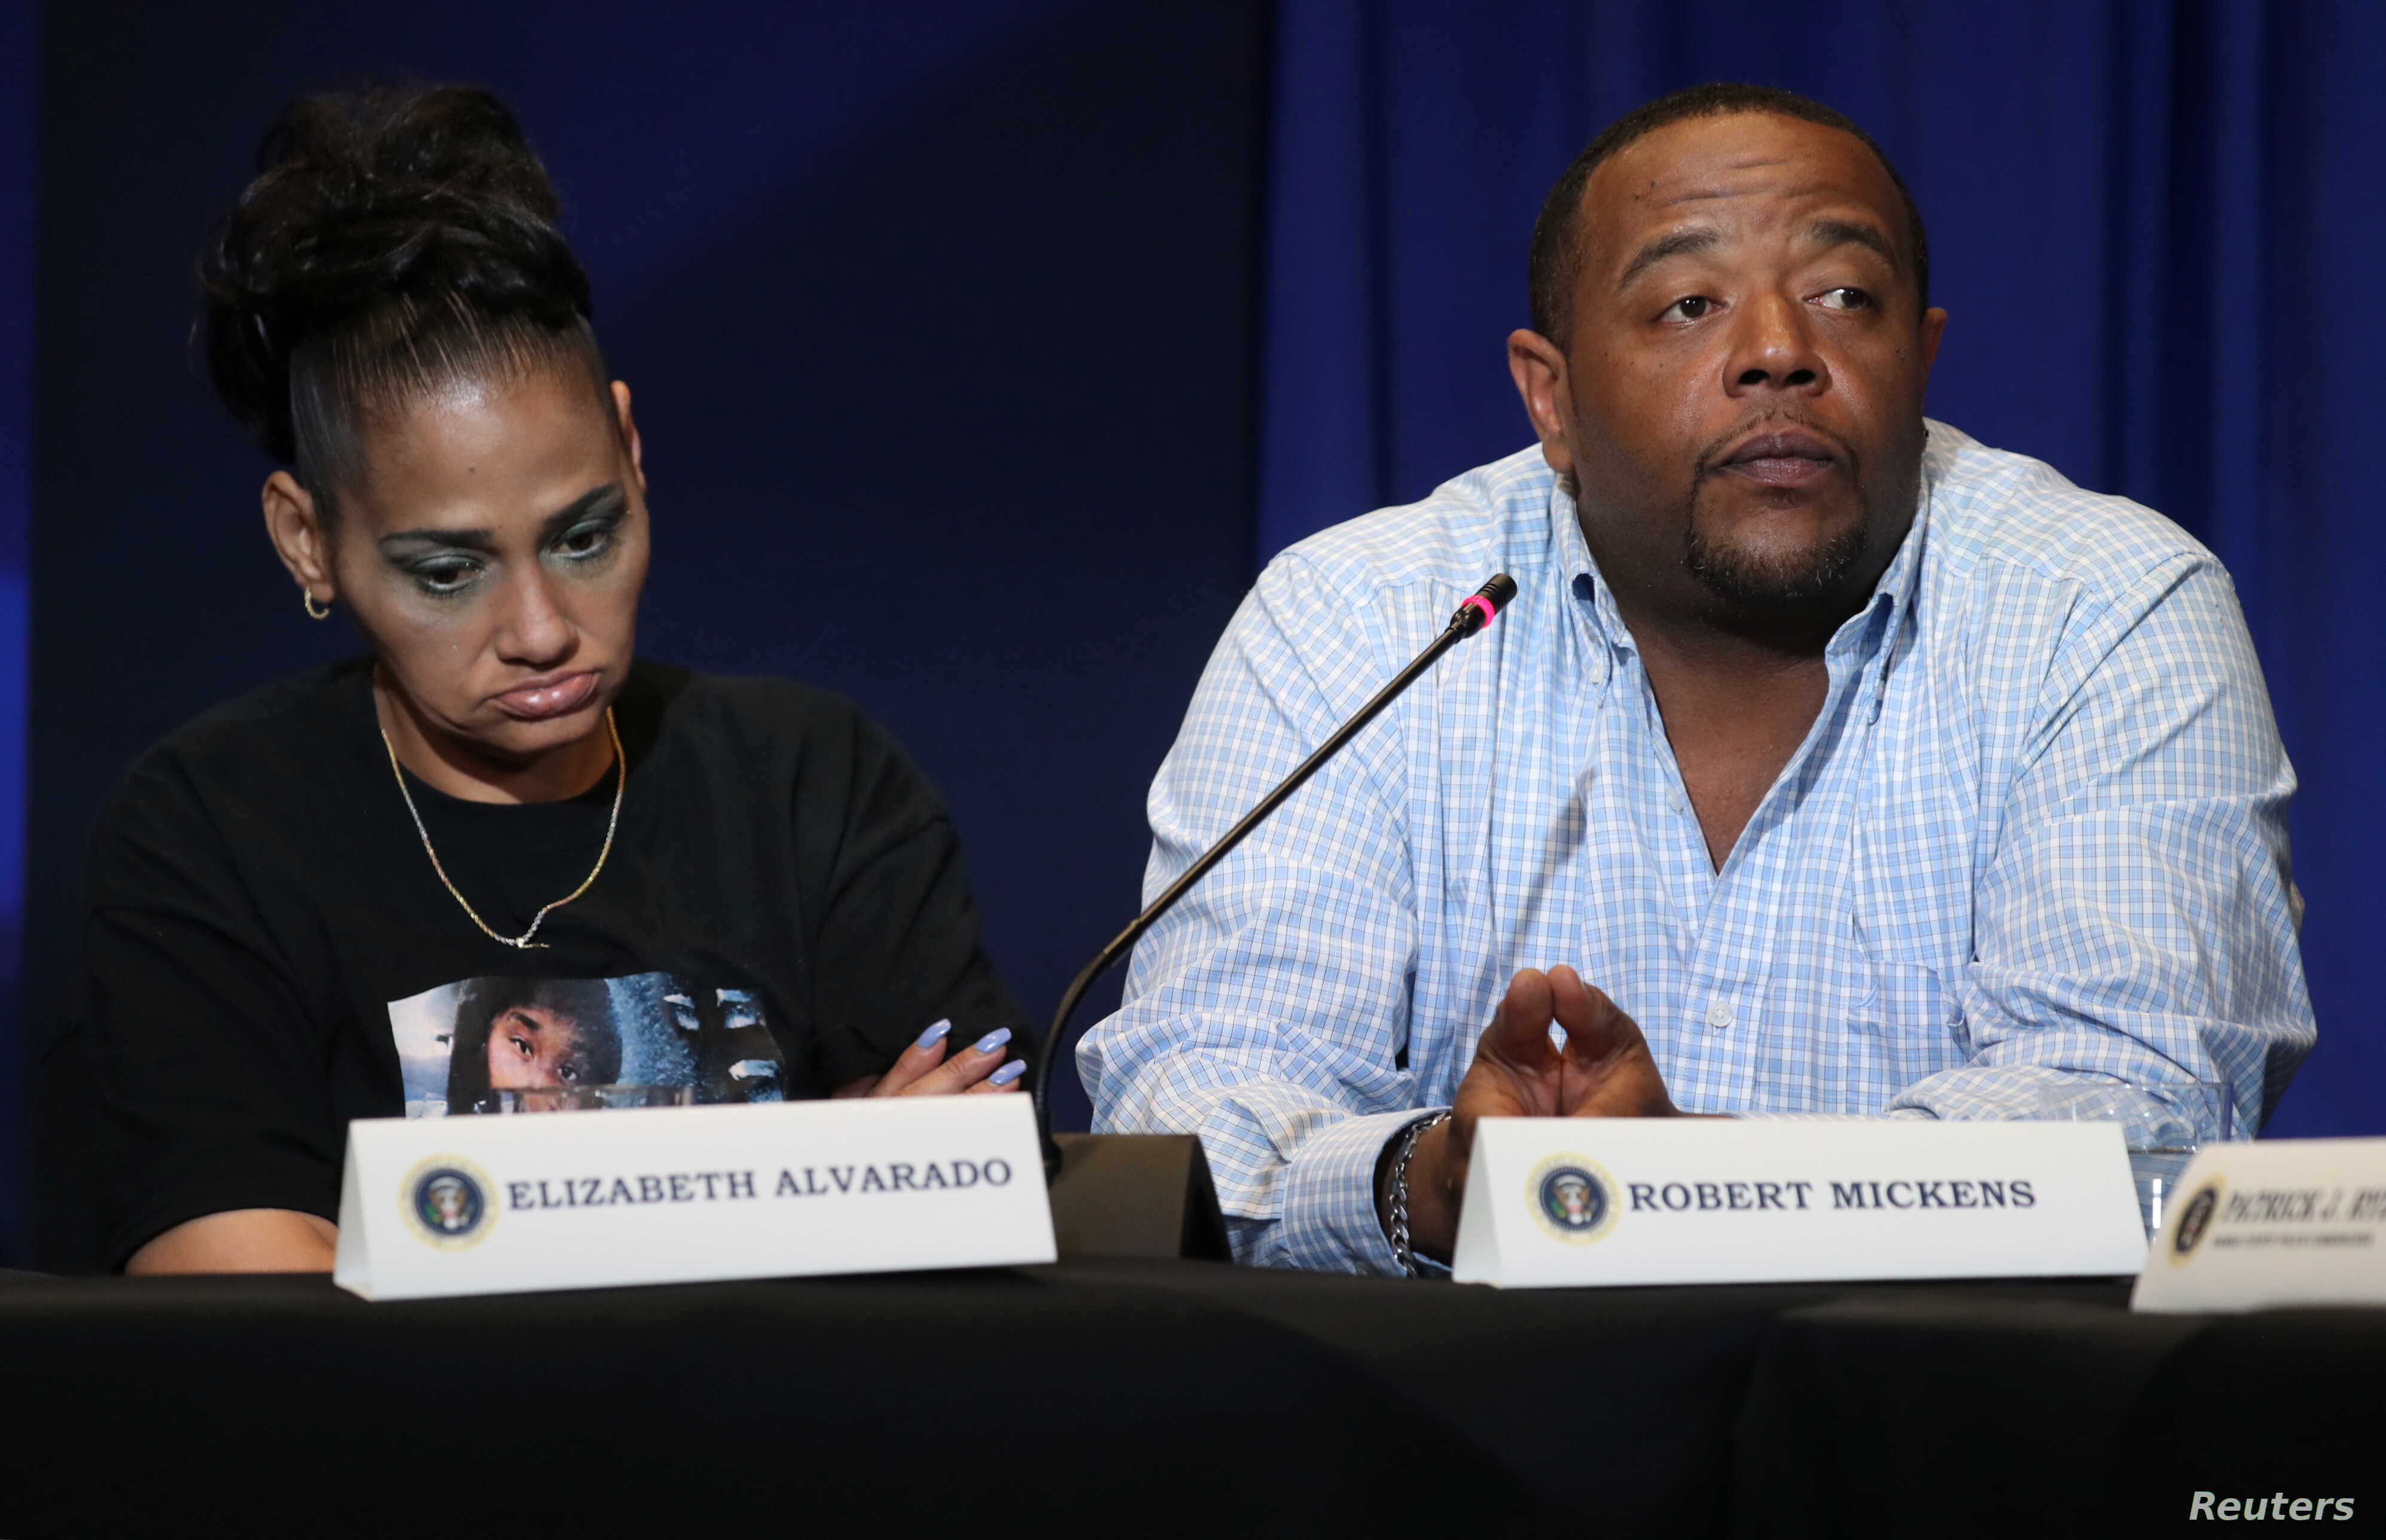 Elizabeth Alvarado and Robert Mickens, whose daughter Nisa Mickens was allegedly killed by MS-13 gang members, participate in a round-table on immigration and the gang MS-13 attended by U.S. President Donald Trump at the Morrelly Homeland Security Ce...